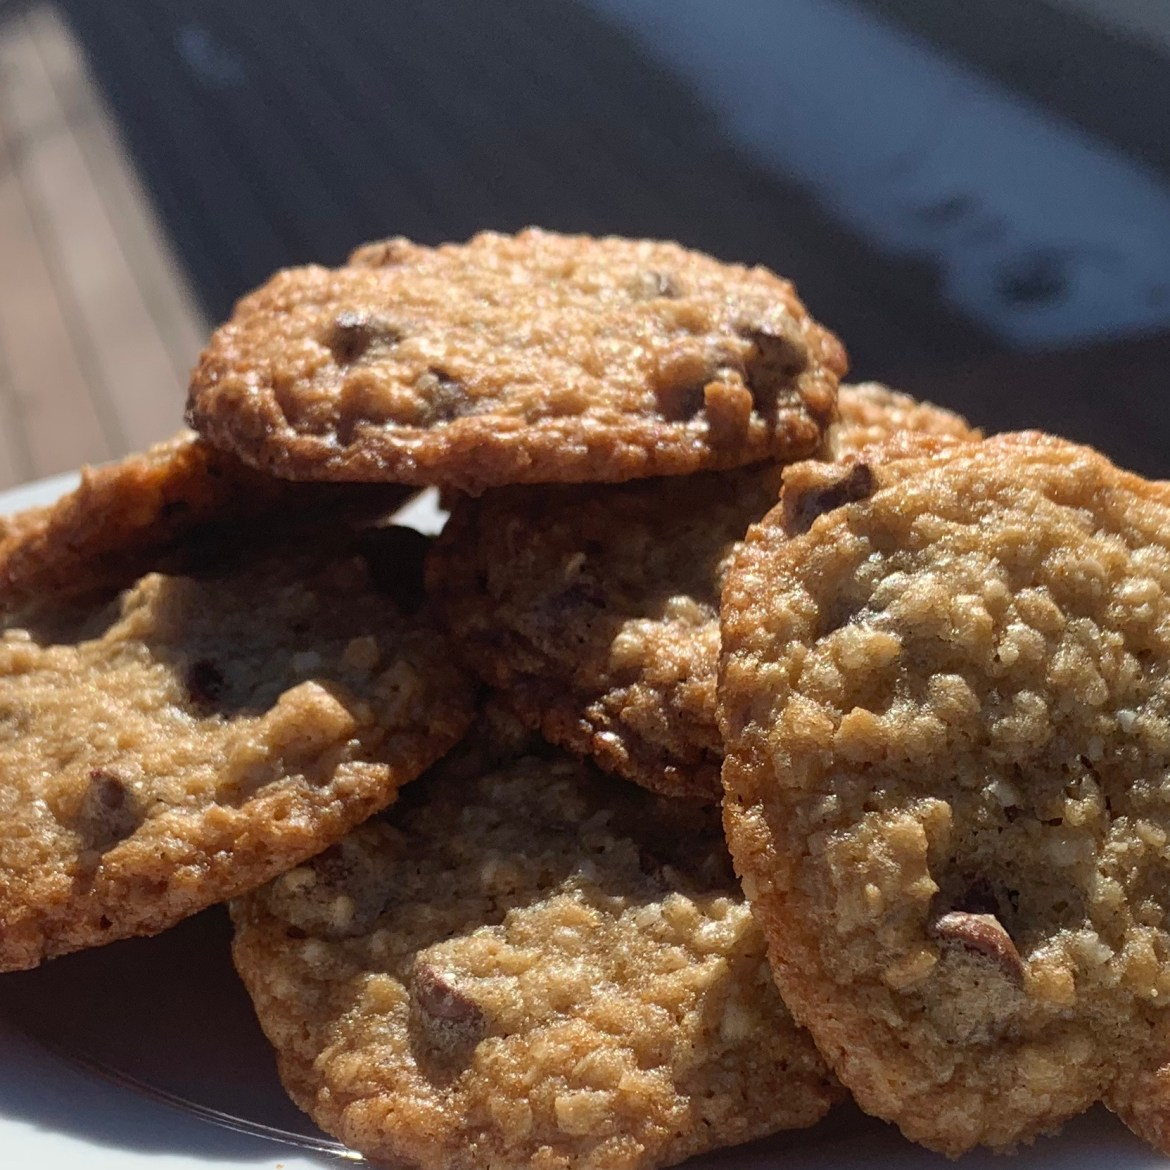 Crispy Oatmeal chocolate chip cookies piled on a plate